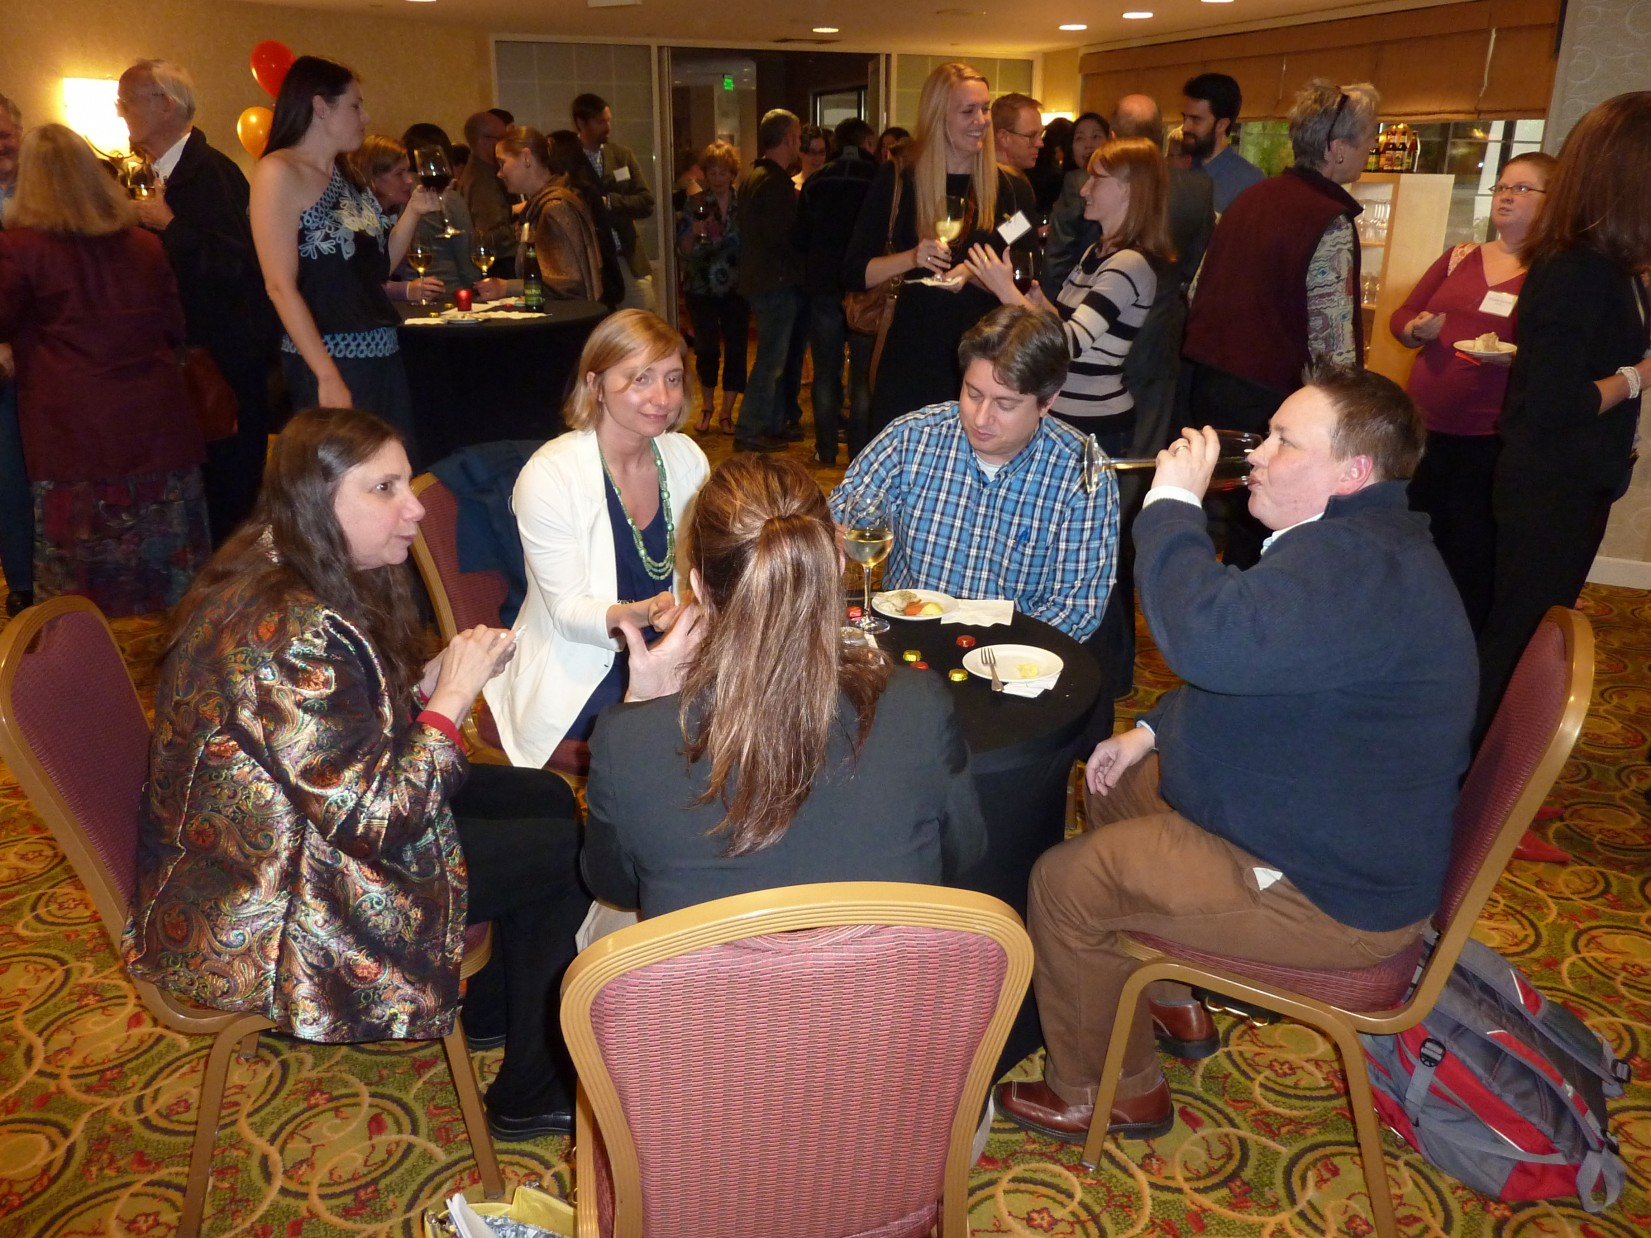 The Crime Victims' Rights Reception is an opportunity for Conference attendees and local communit...